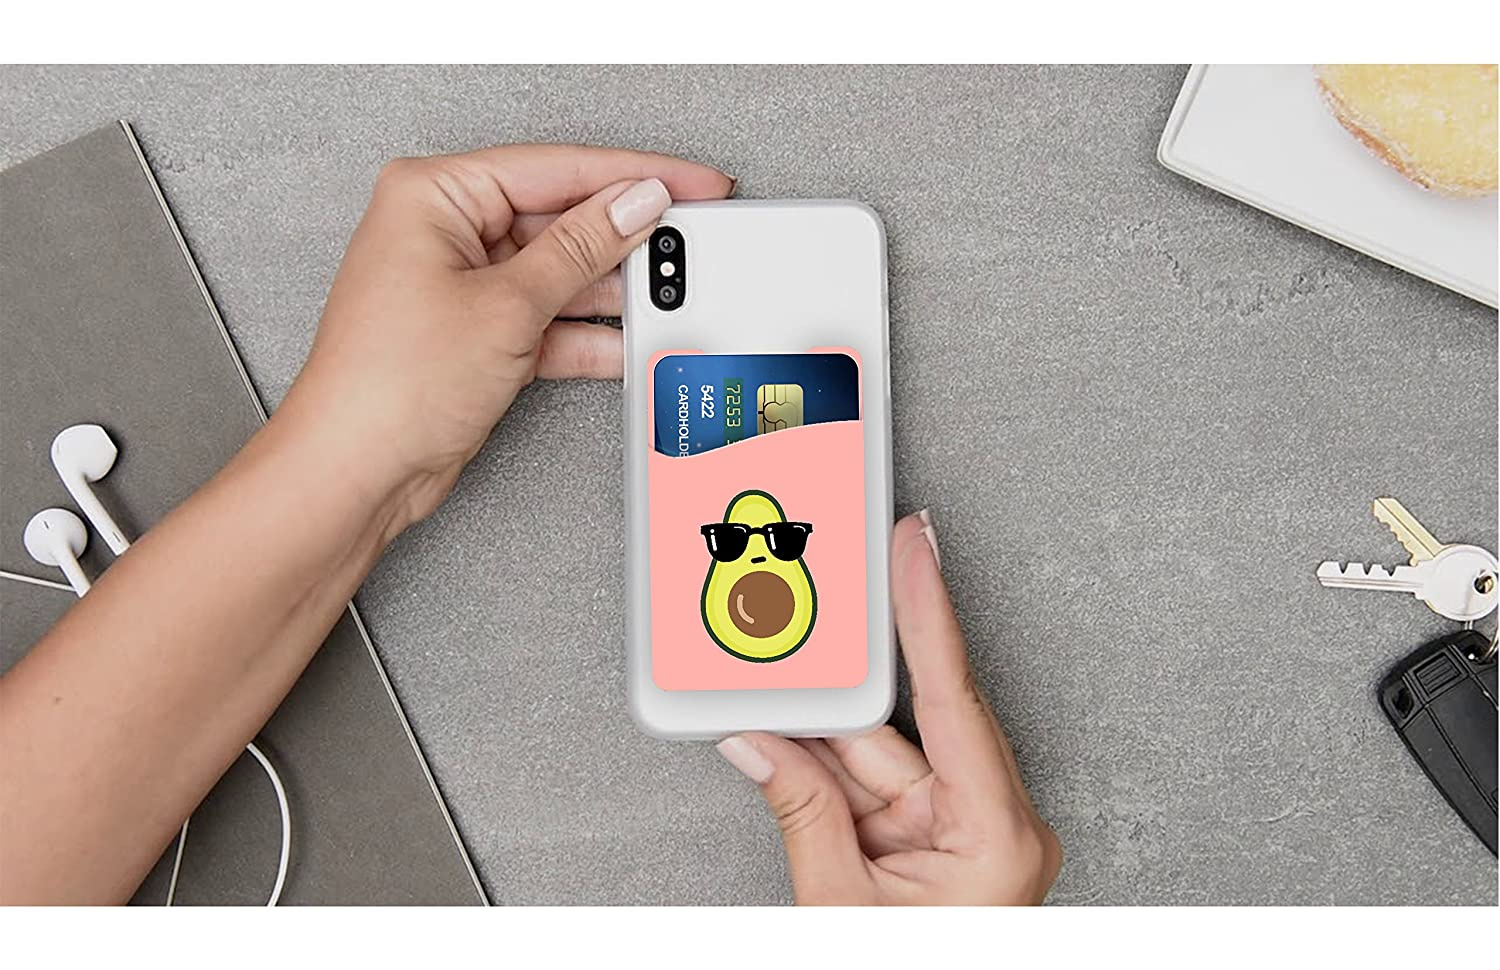 Avocado and Pineapple Cell Phone Stick on Wallet Card Holder Phone Pocket for iPhone Android and All Smartphones. Two